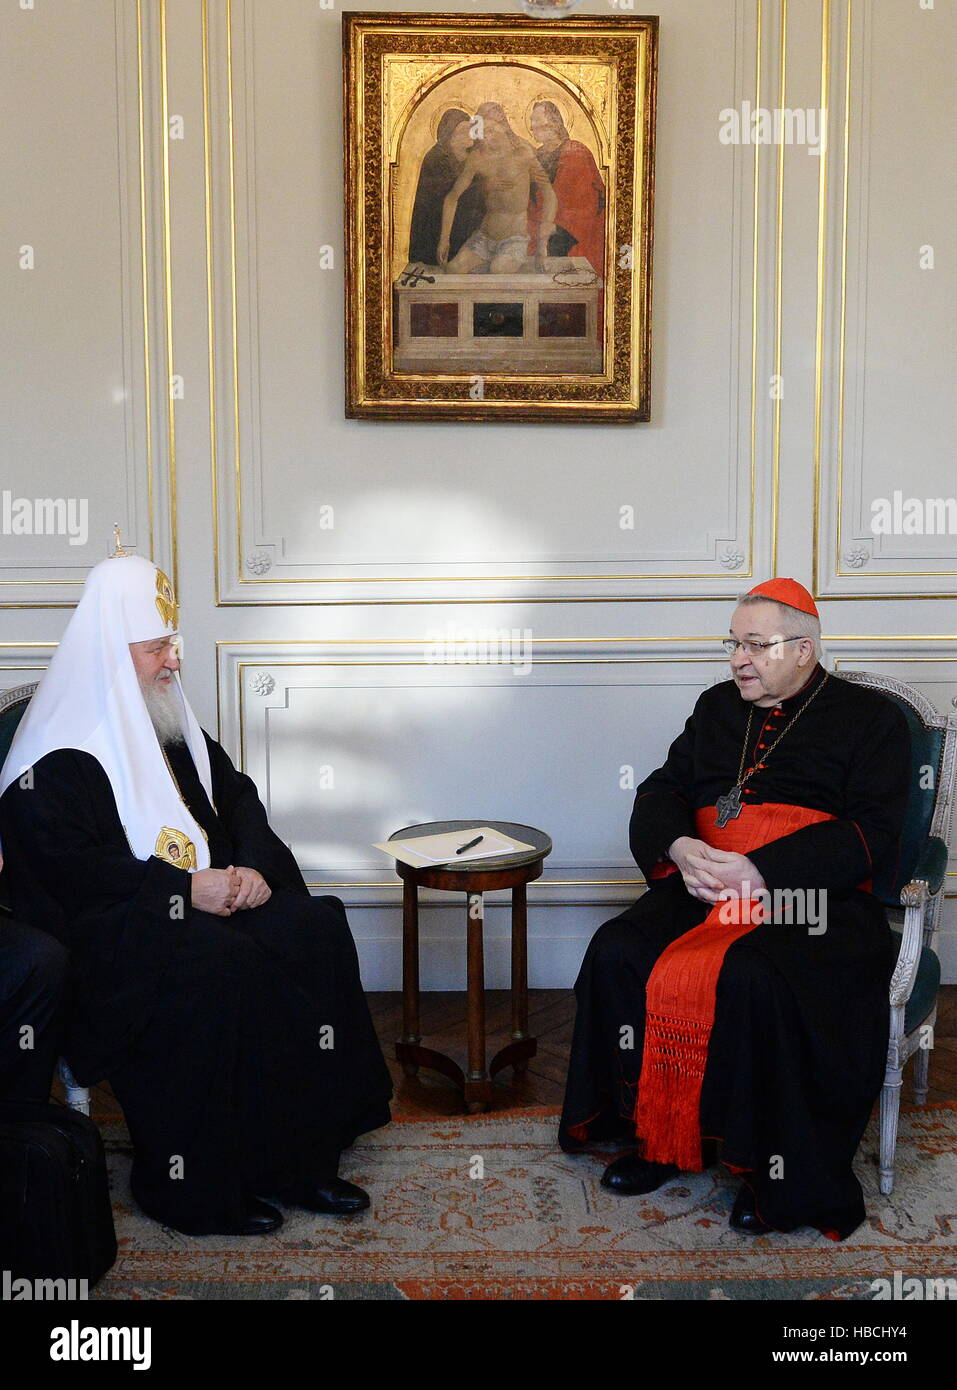 Paris, France. 5th Dec, 2016. Patriarch Kirill (L) of Moscow and All Russia and Cardinal Andre Vingt-Trois, Archbishop - Stock Image